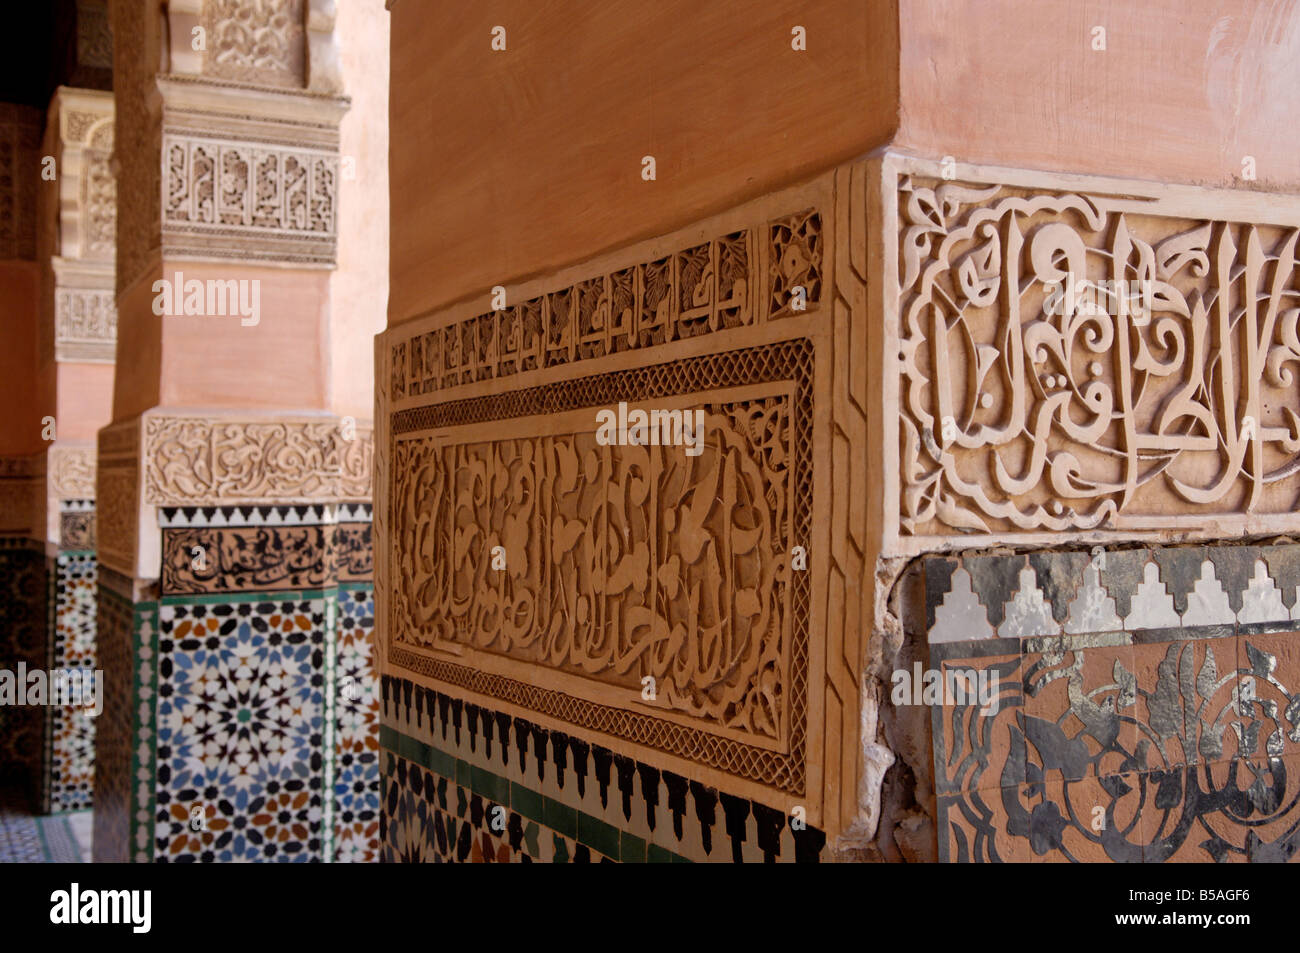 The Medersa Ben Youssef, richly decorated in marble, carved wood and plasterwork, Medina, Marrakesh, Morroco, Africa Stock Photo